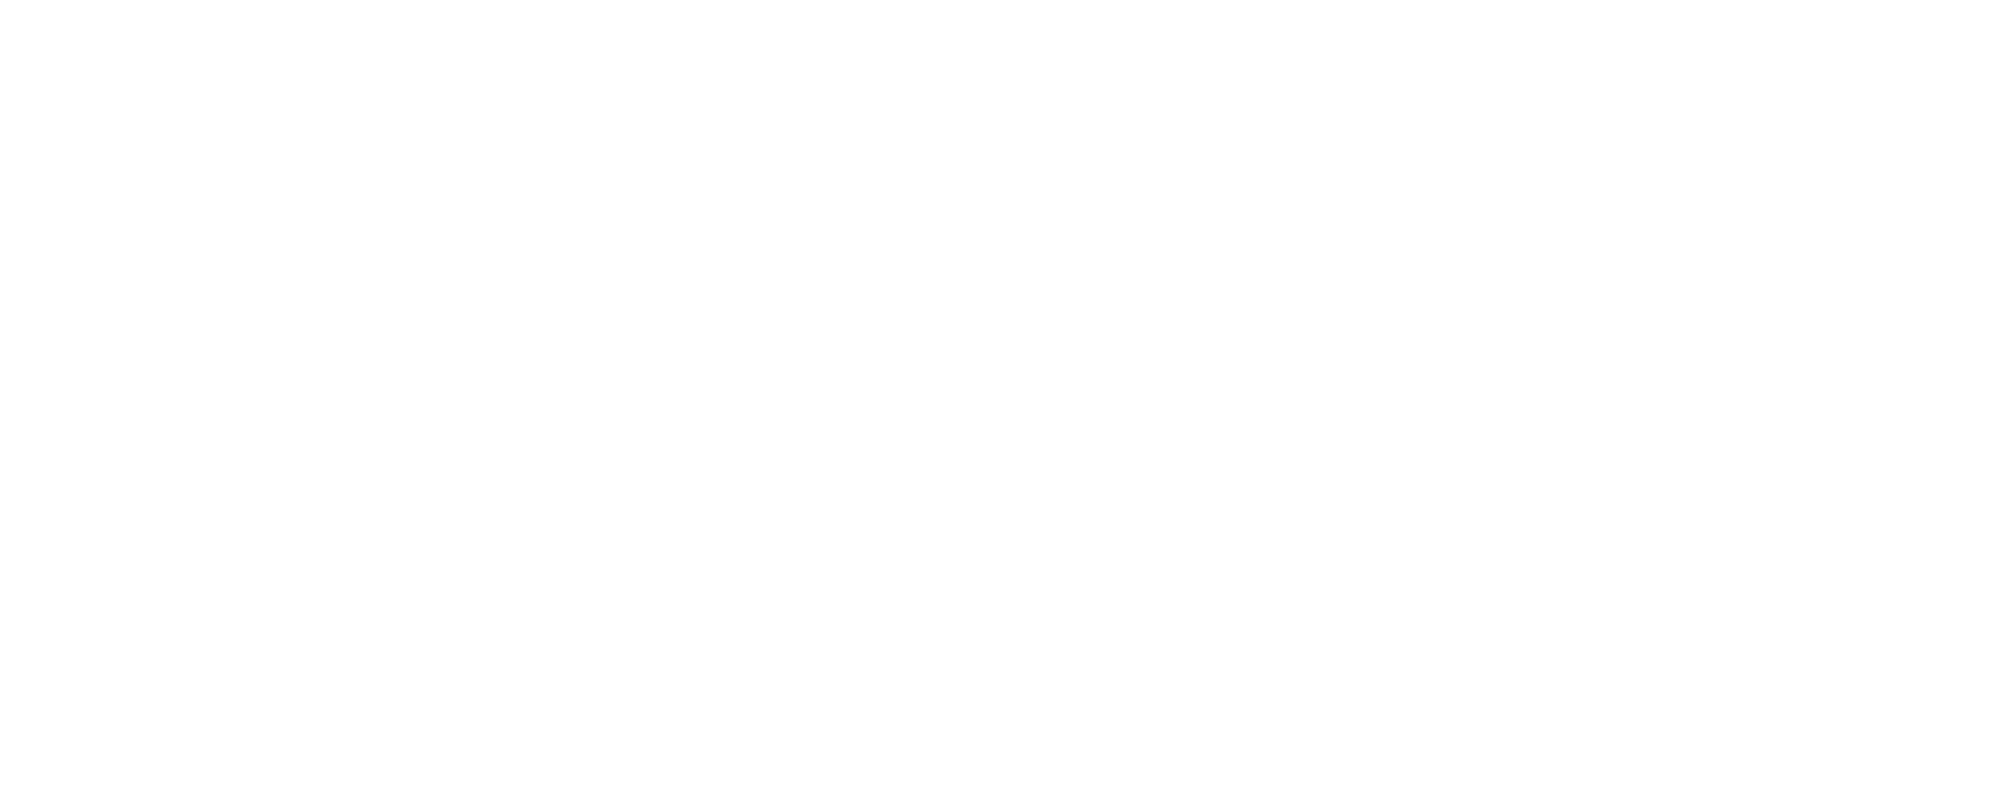 MENDES GROUP-logo-white.png